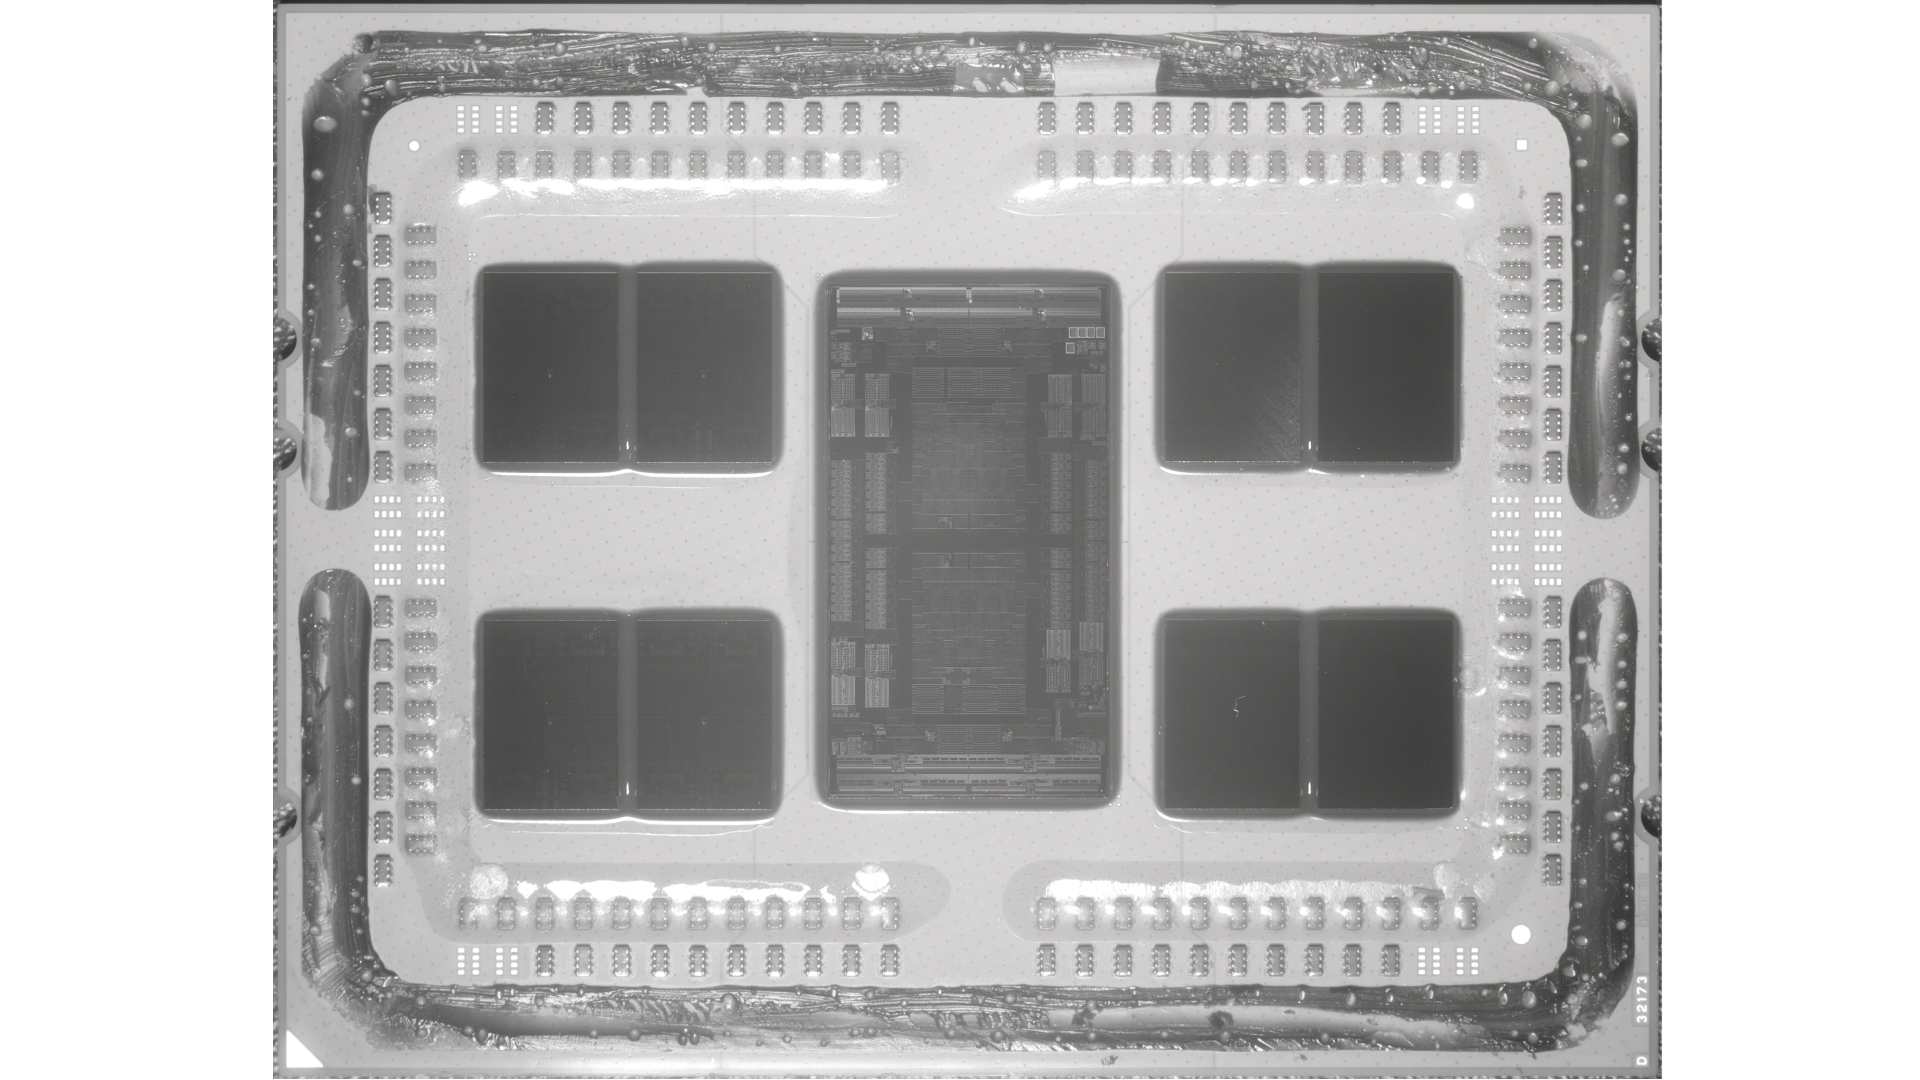 AMD Epyc Rome chip close-up